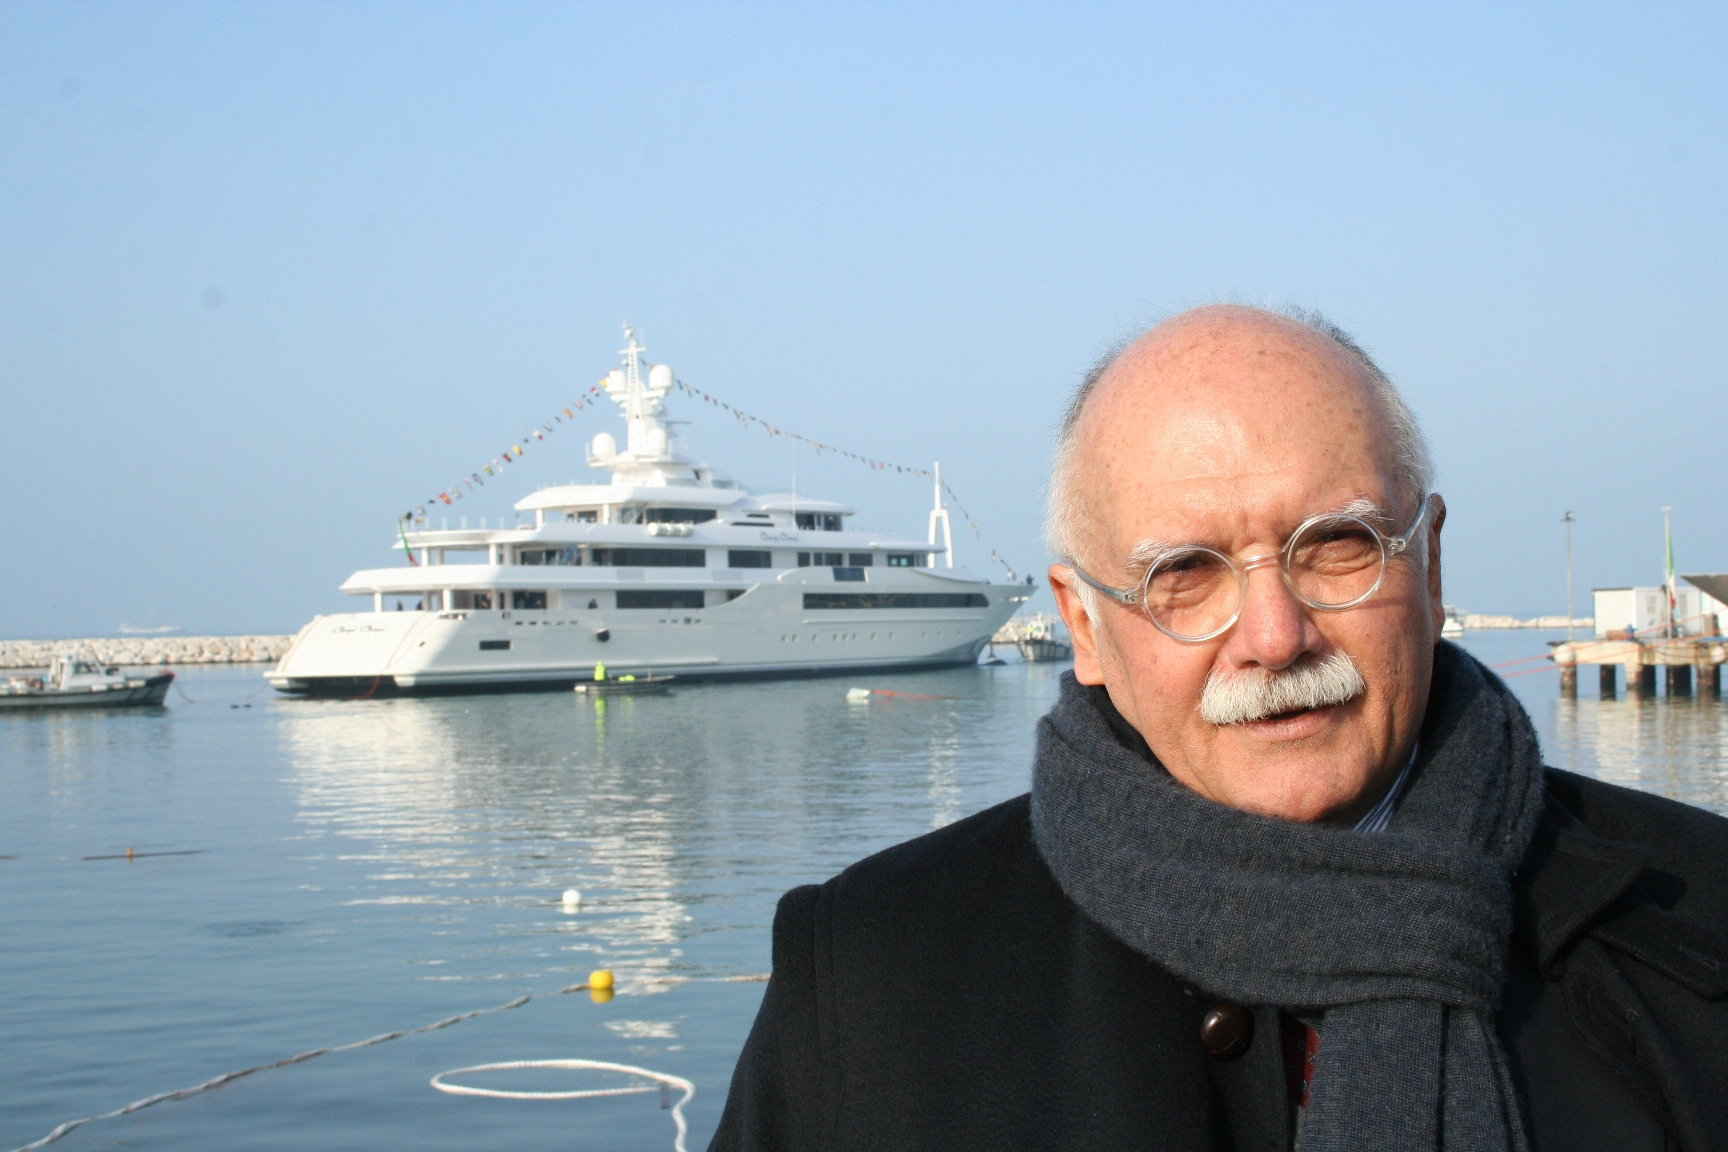 Gianni Zuccon at launch of the CRN 129 superyacht CHOPI CHOPI